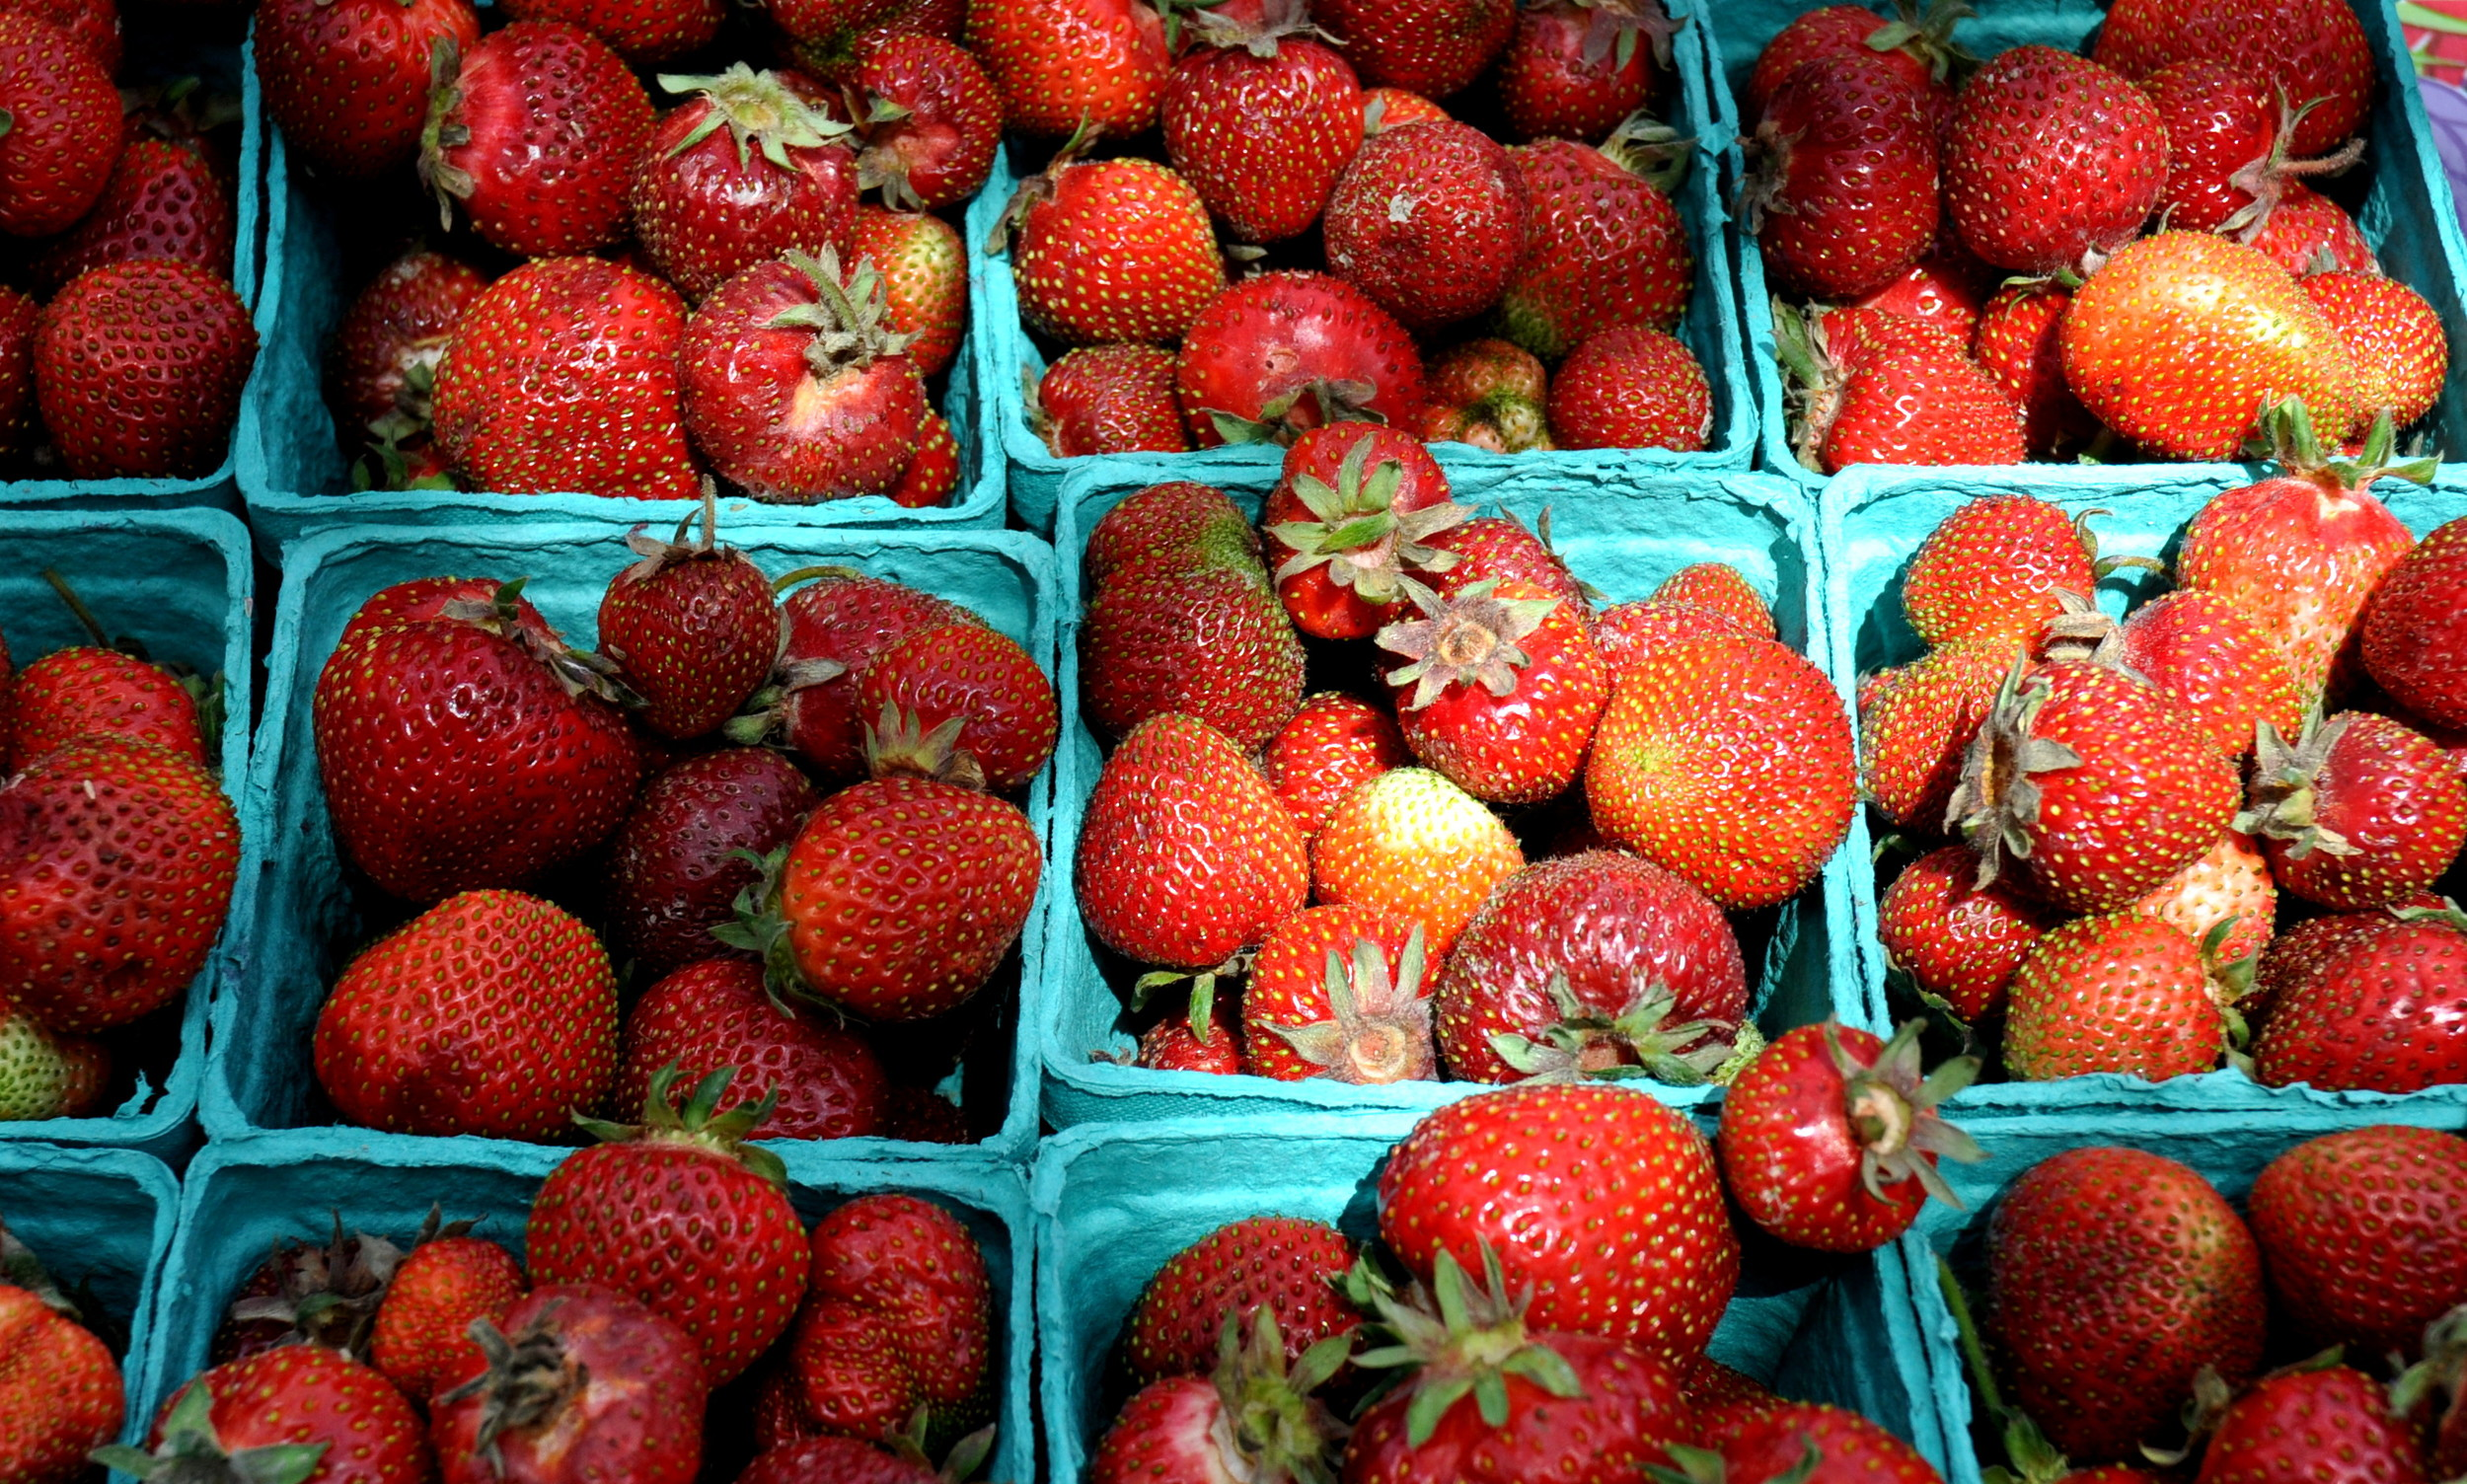 Strawberries from Hayton Berry Farms. Photo copyright 2012 by Zachary D. Lyons.